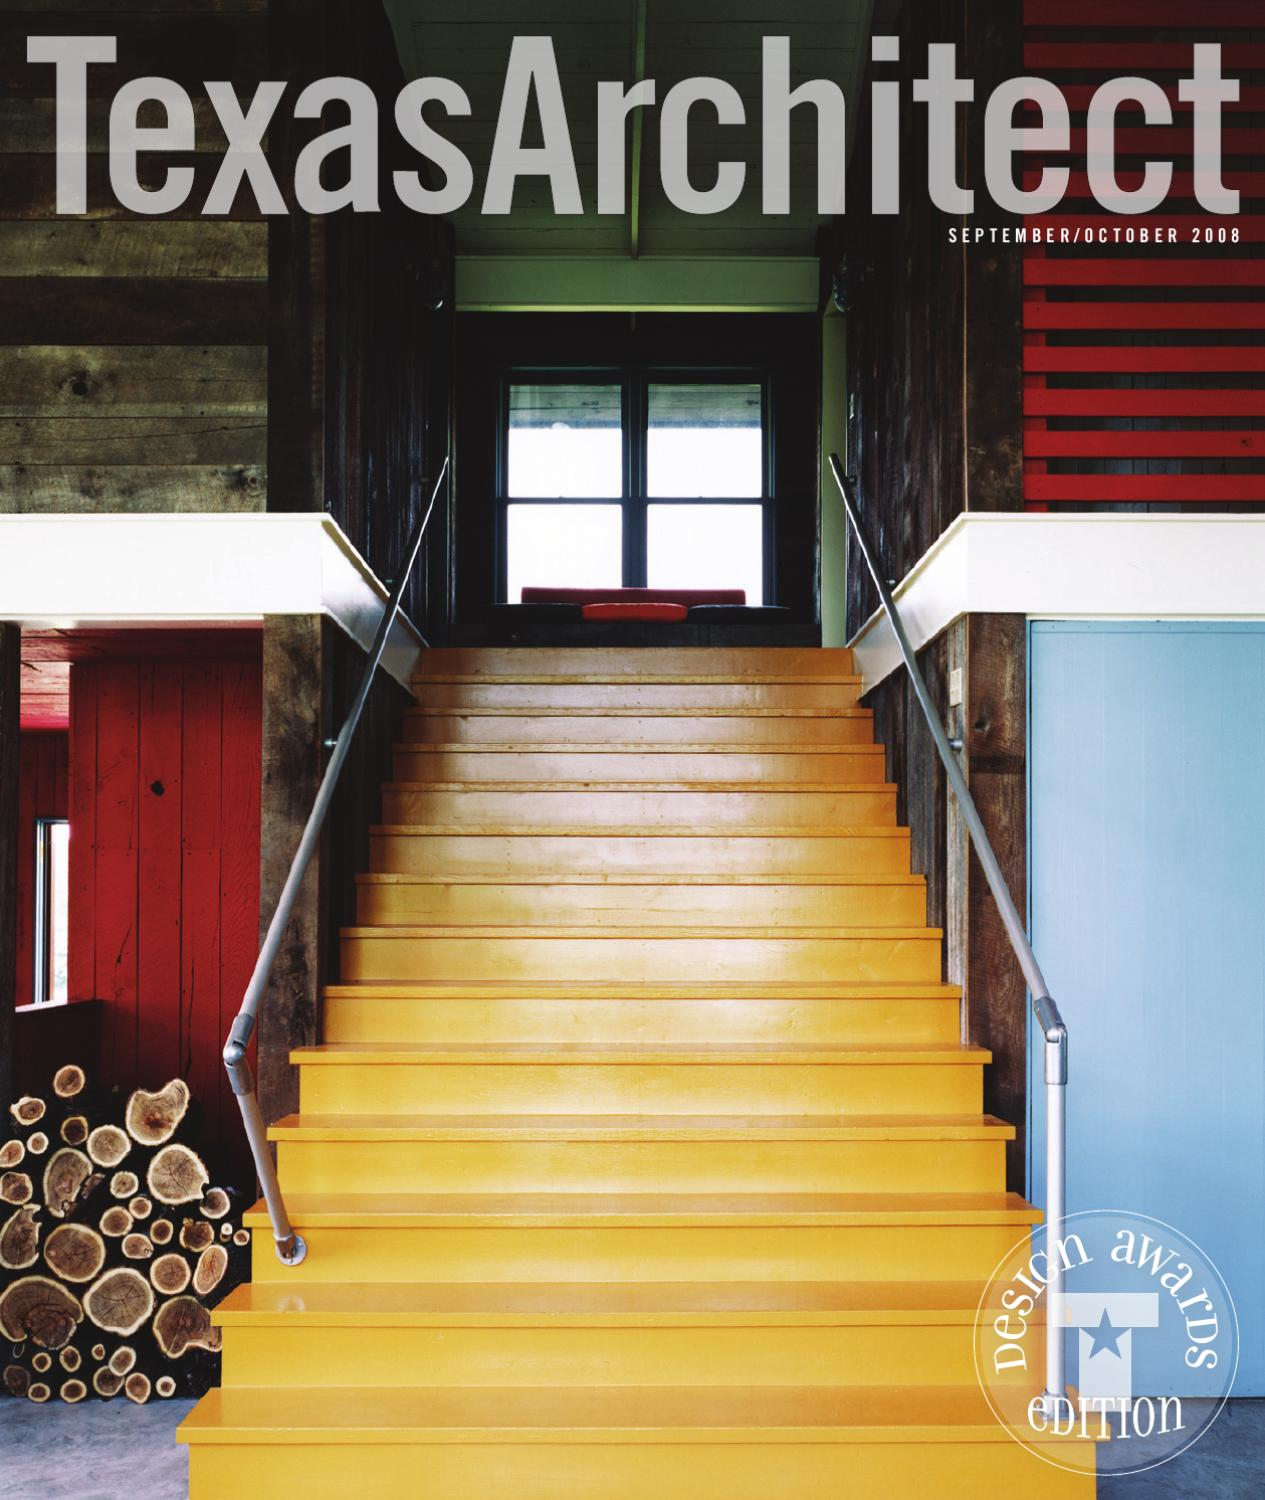 Texas Architect Sept Oct 2008 Design Awards By Society Of Ideas Gt French Drain Installation Diagram Architects Issuu